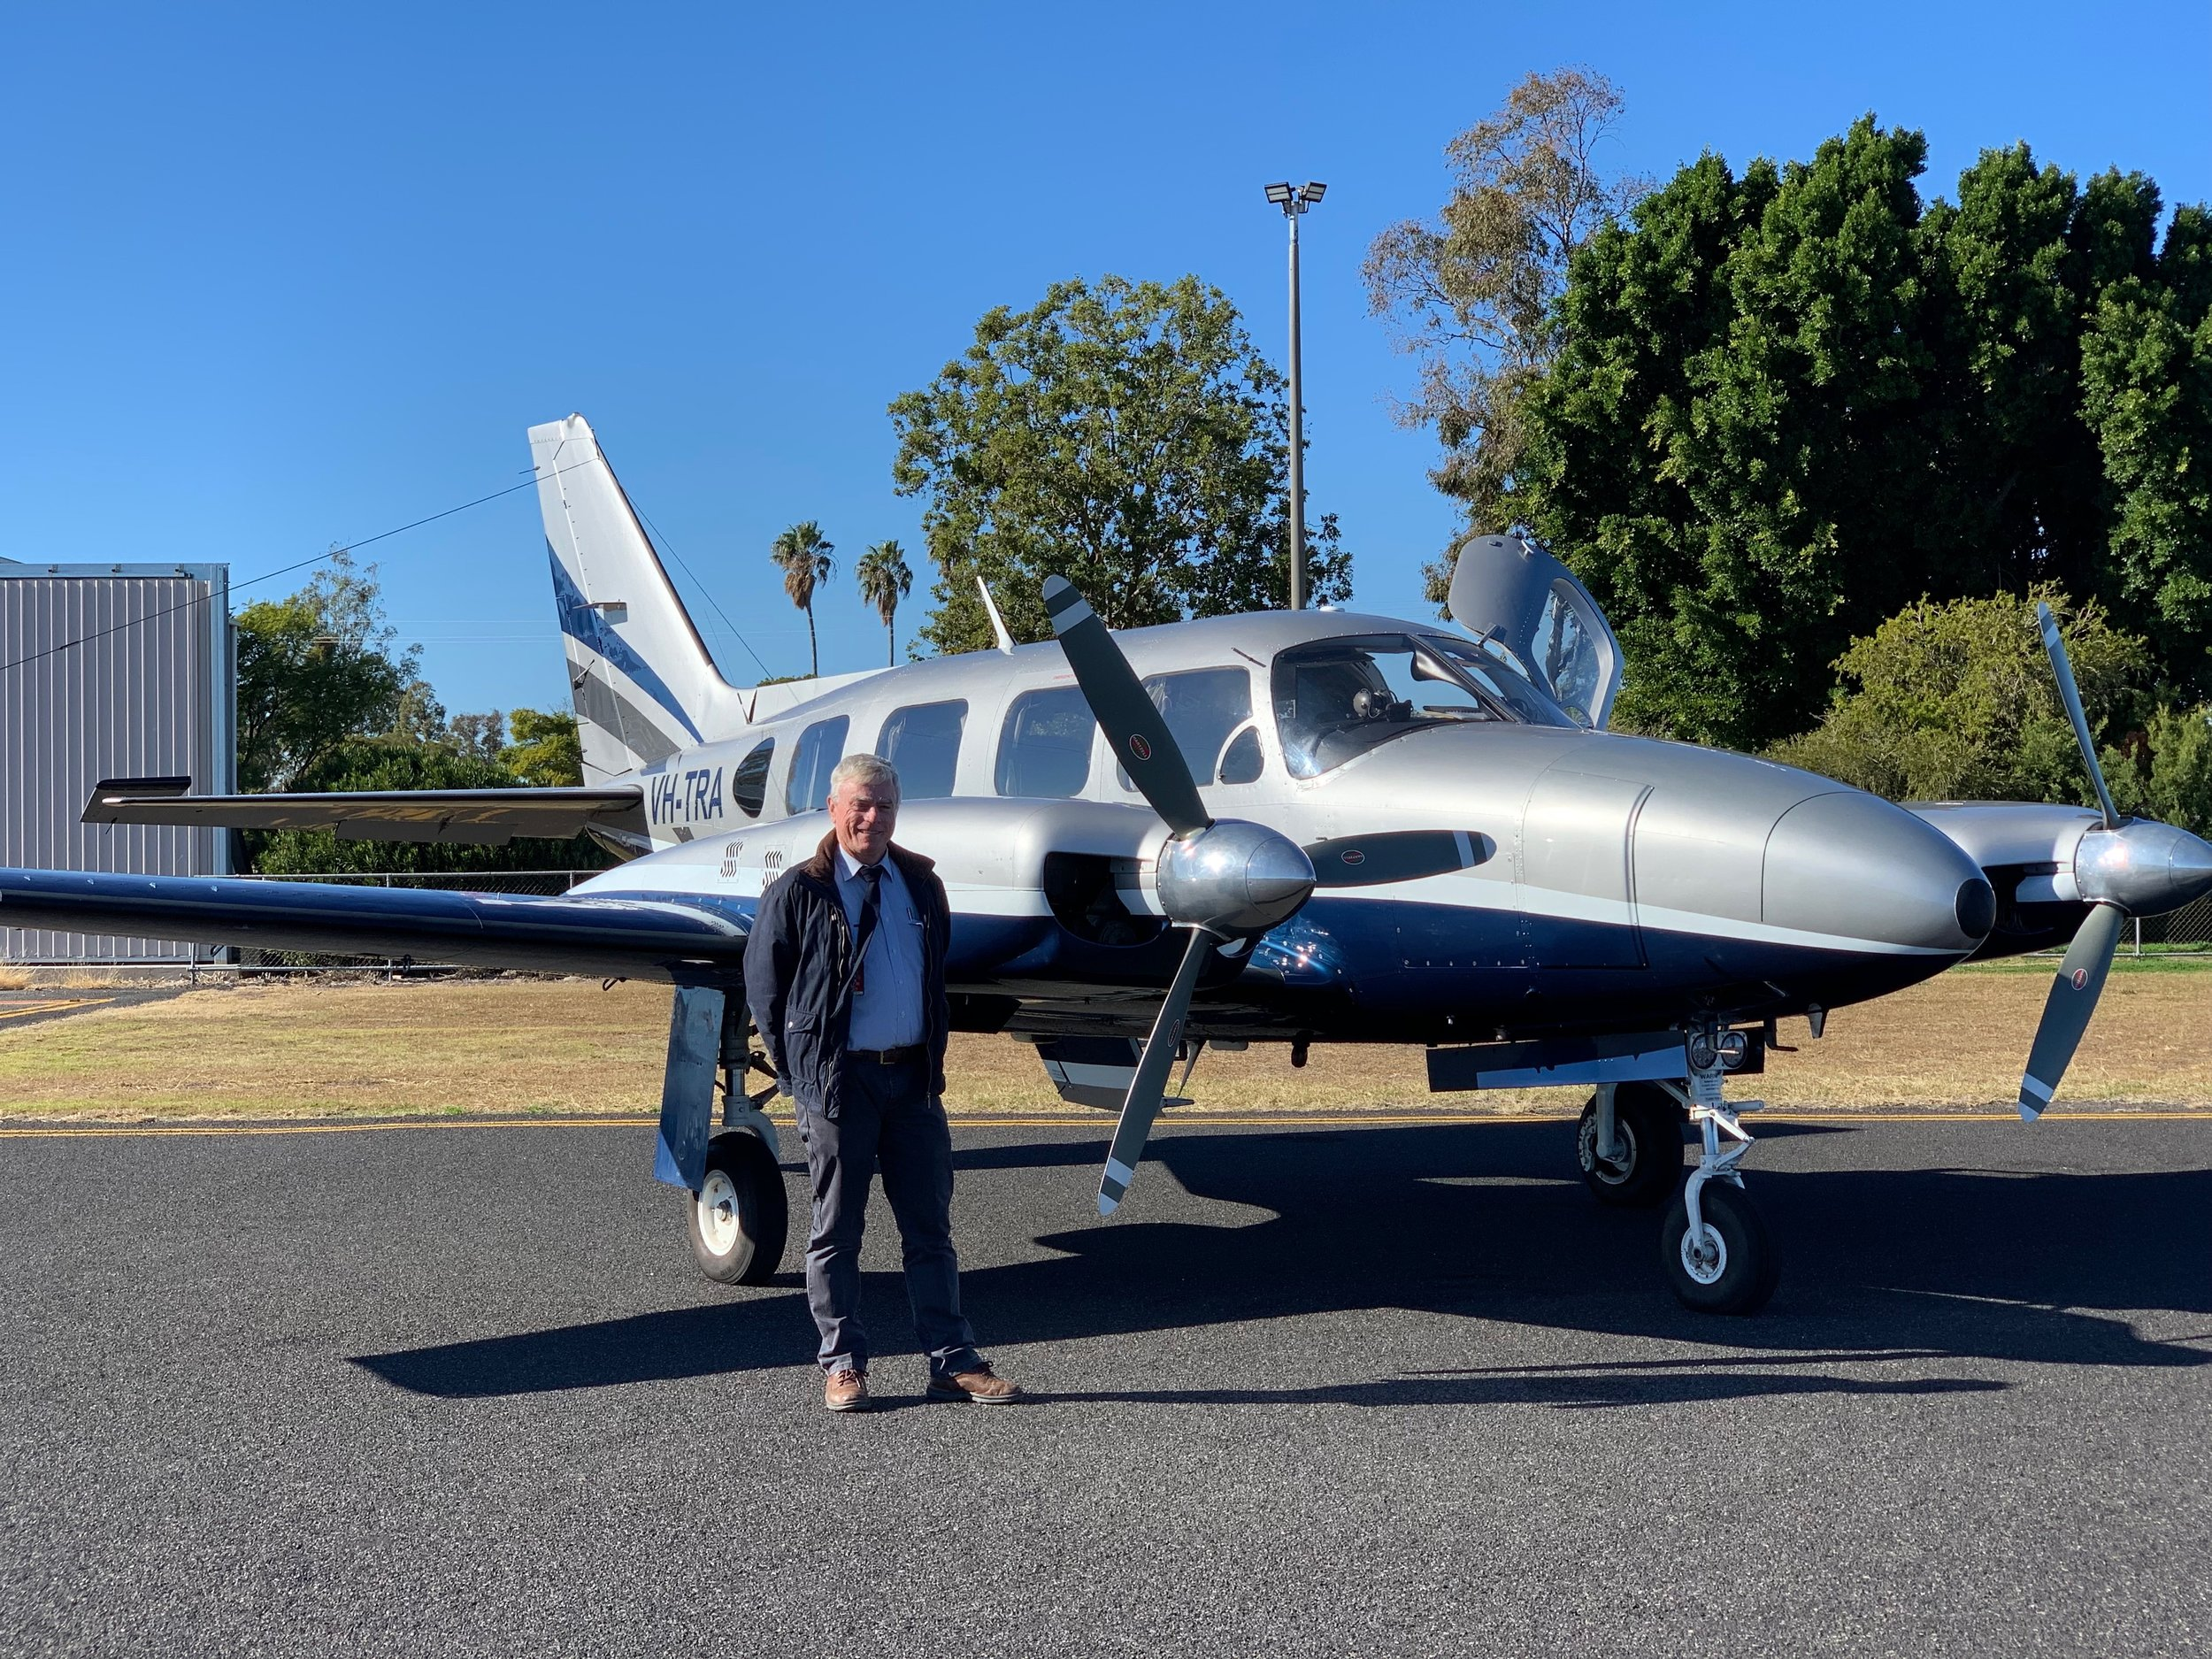 Peter Travers - GOONDIWINDIPeter Travers is a highly experienced pilot who owns the business he operates. His knowledge of the area and his experience will ensure that your charter trip is carried out to high standards.